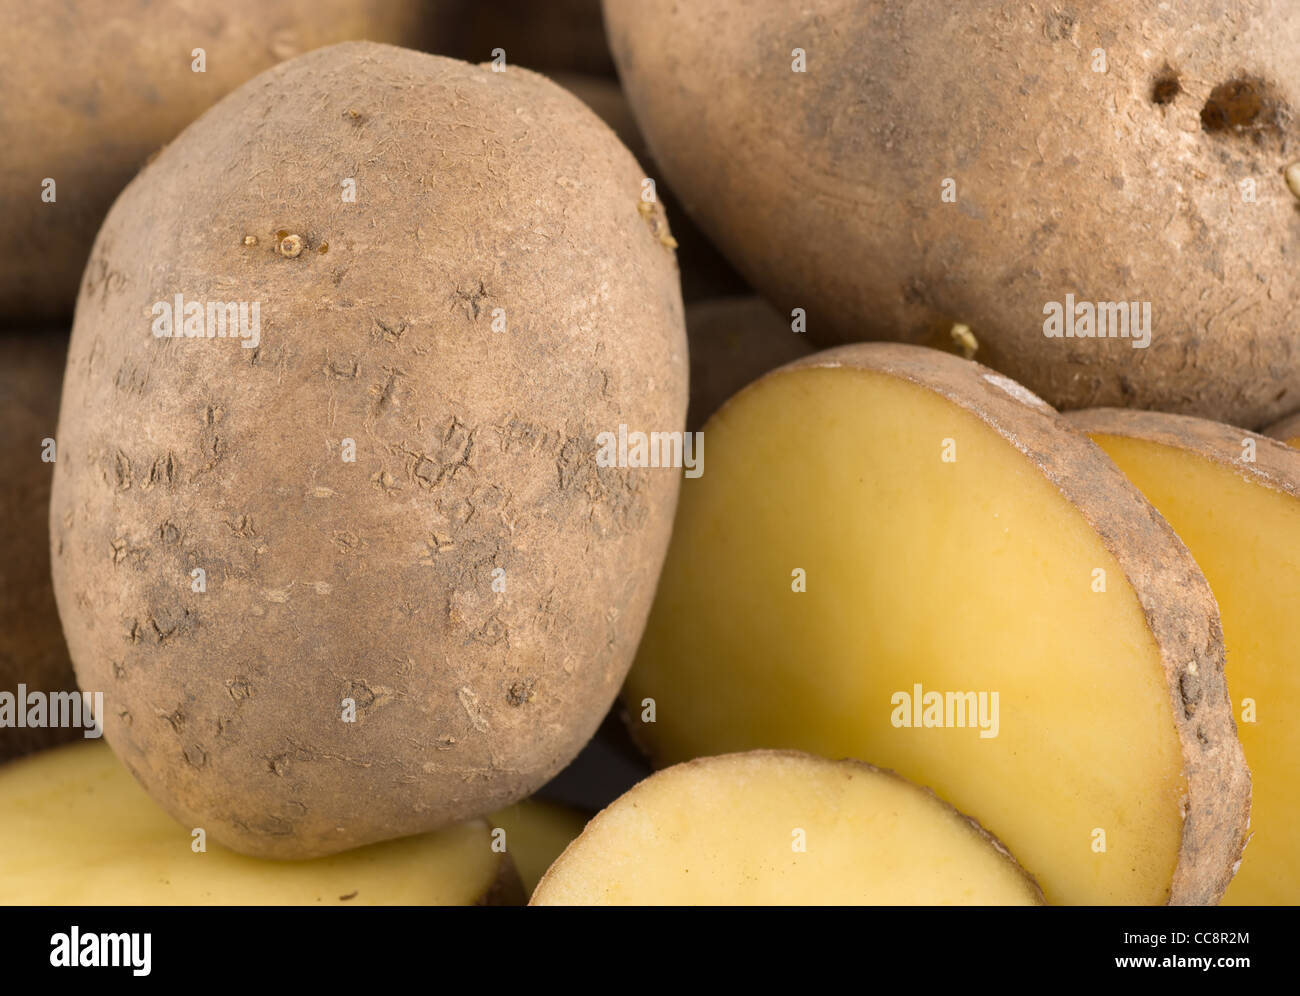 A large group of objects raw potatoes - Stock Image